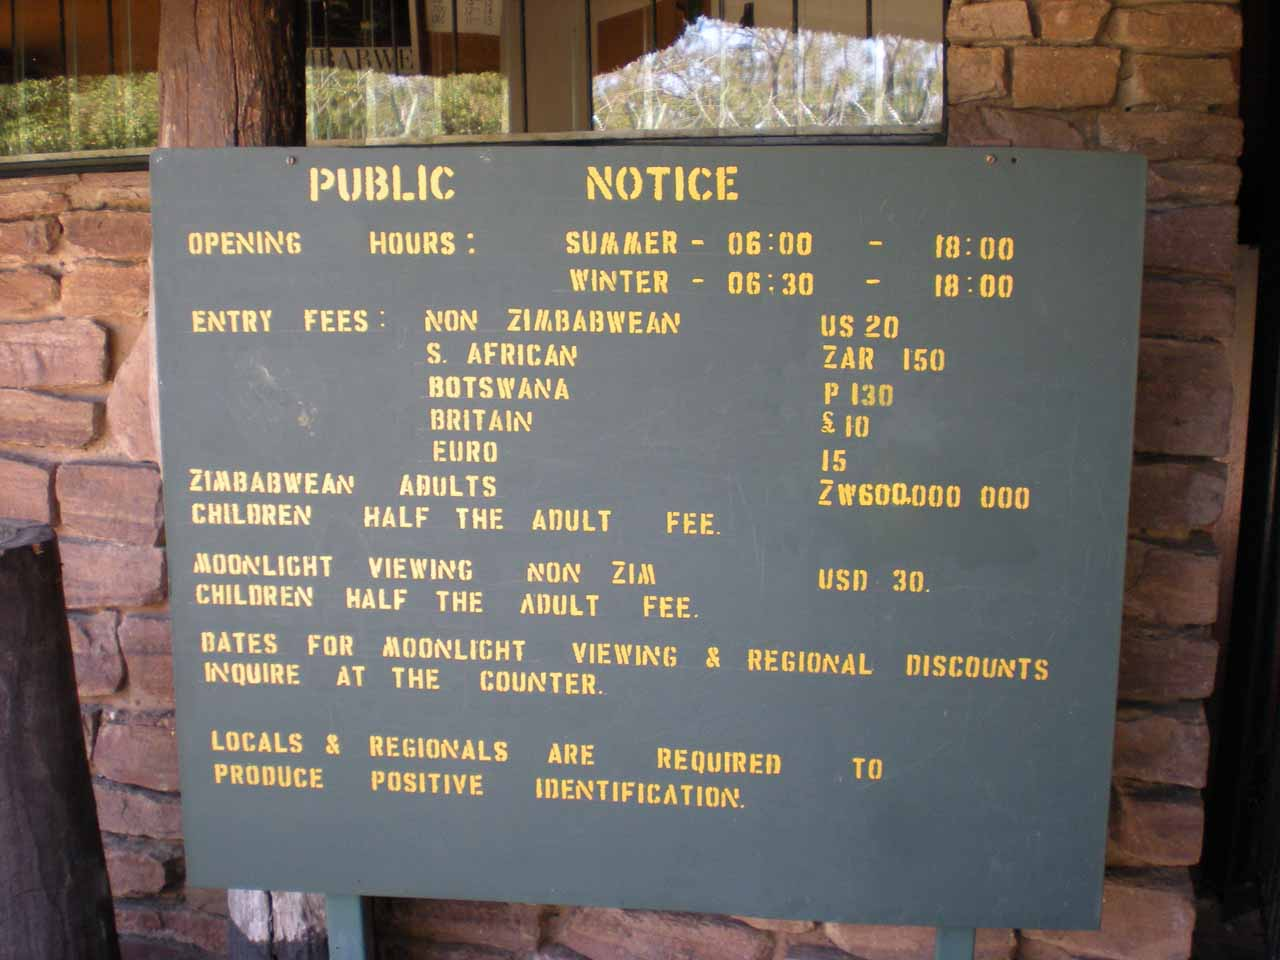 Check out how much Zimbabwean adults have to pay to get into the park